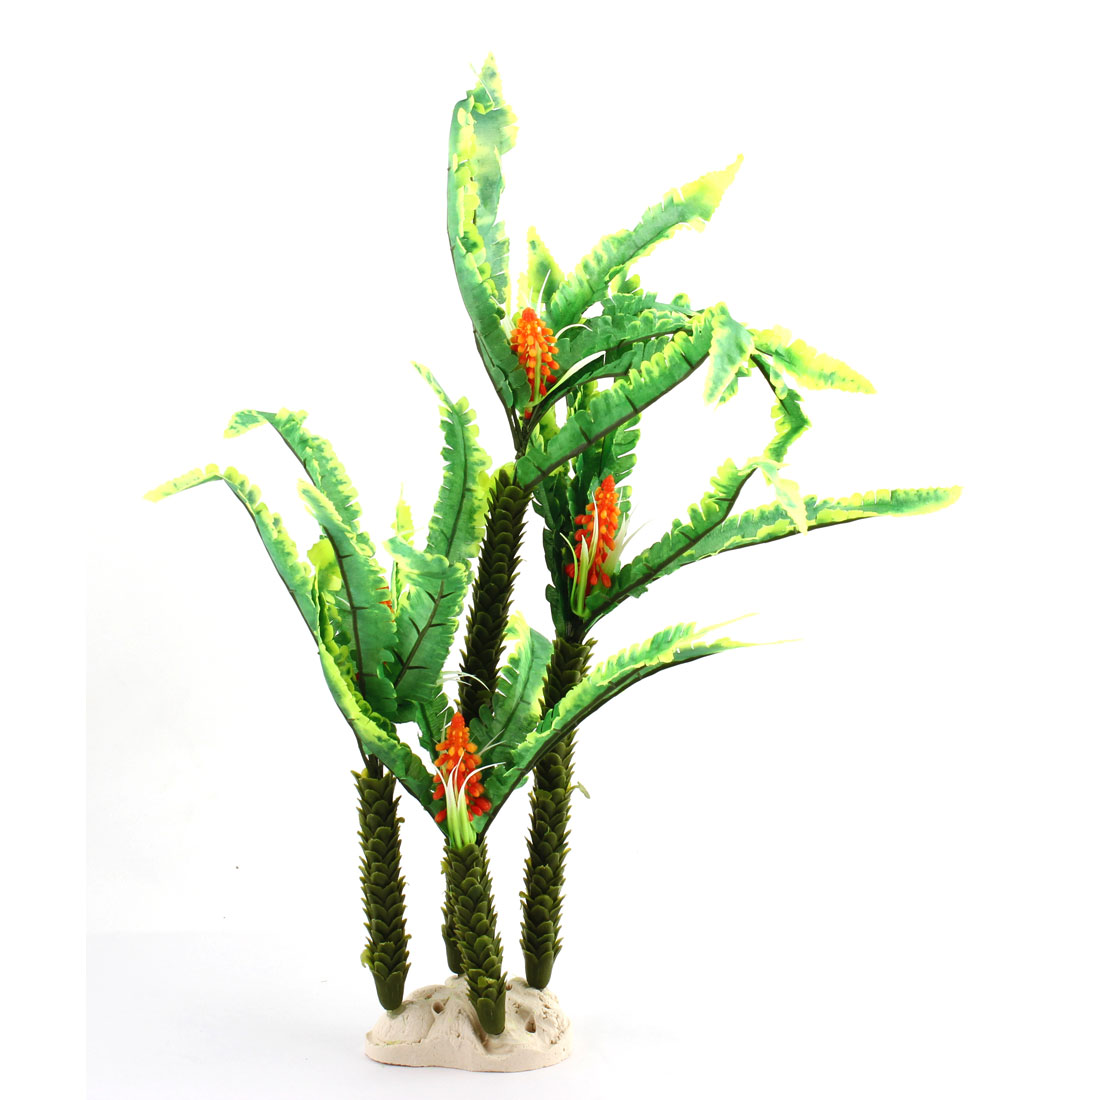 Household Fish Tank Aquatic Landscape Scenery Viewing Ornament Water Plants